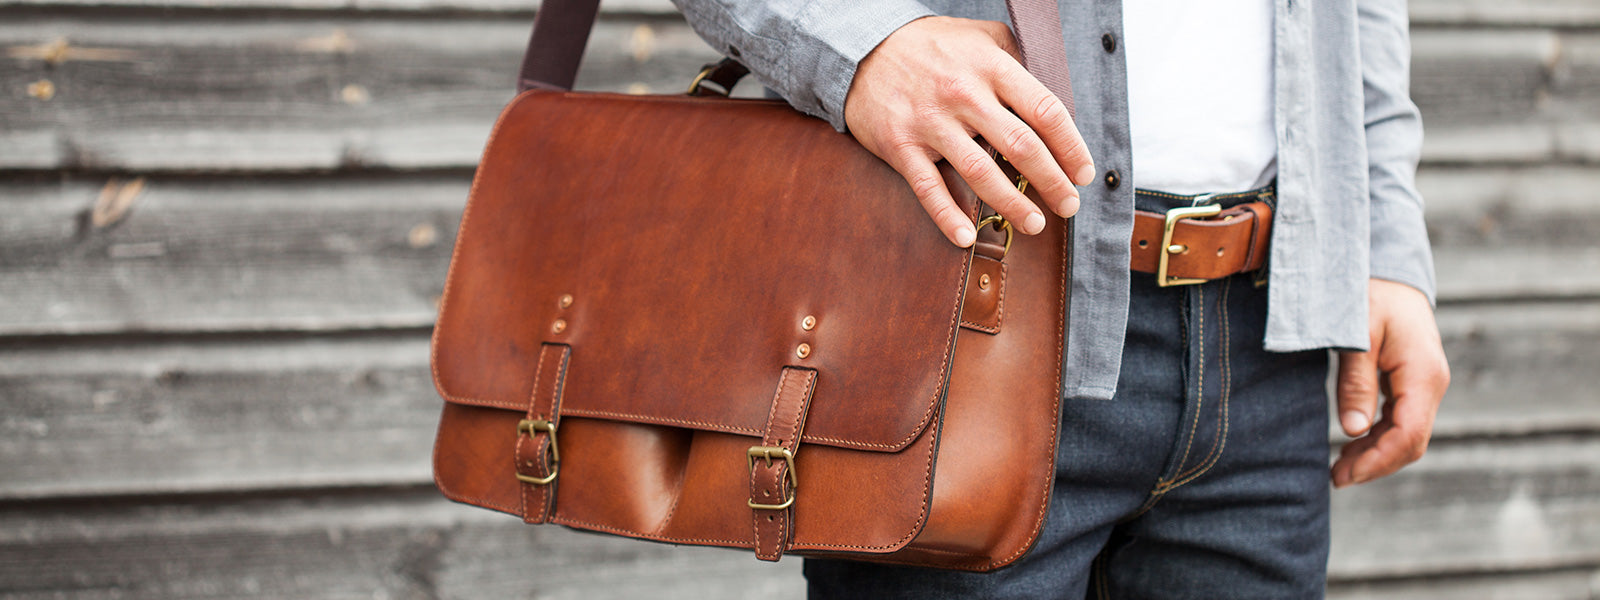 Messenger bag by Tanner Bates